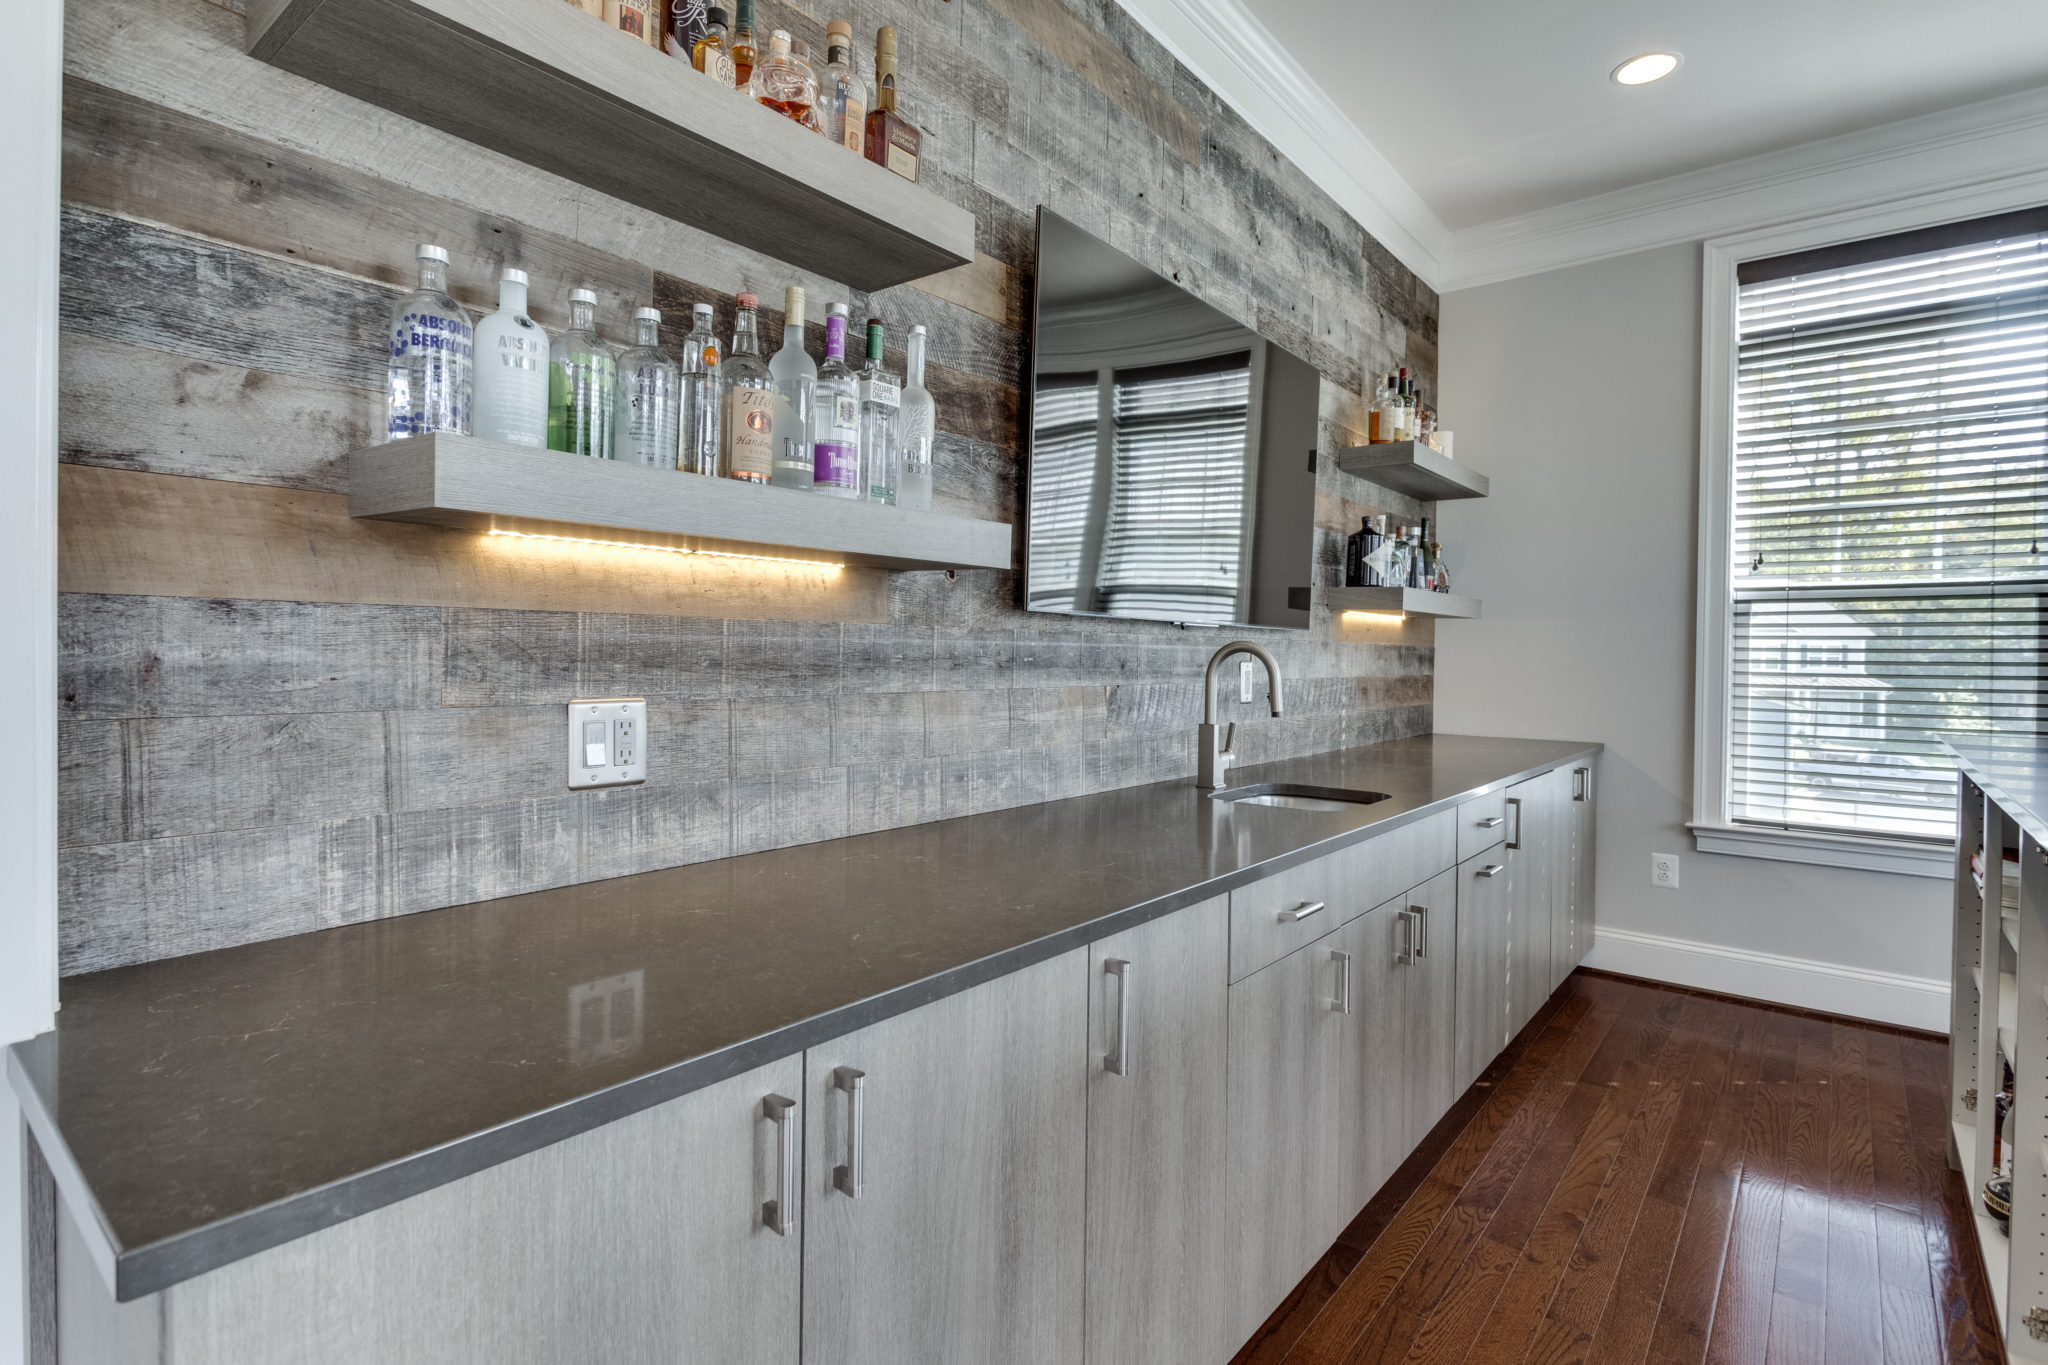 COVID-19 – take advantage of downtime and plan YOUR HOME remodel